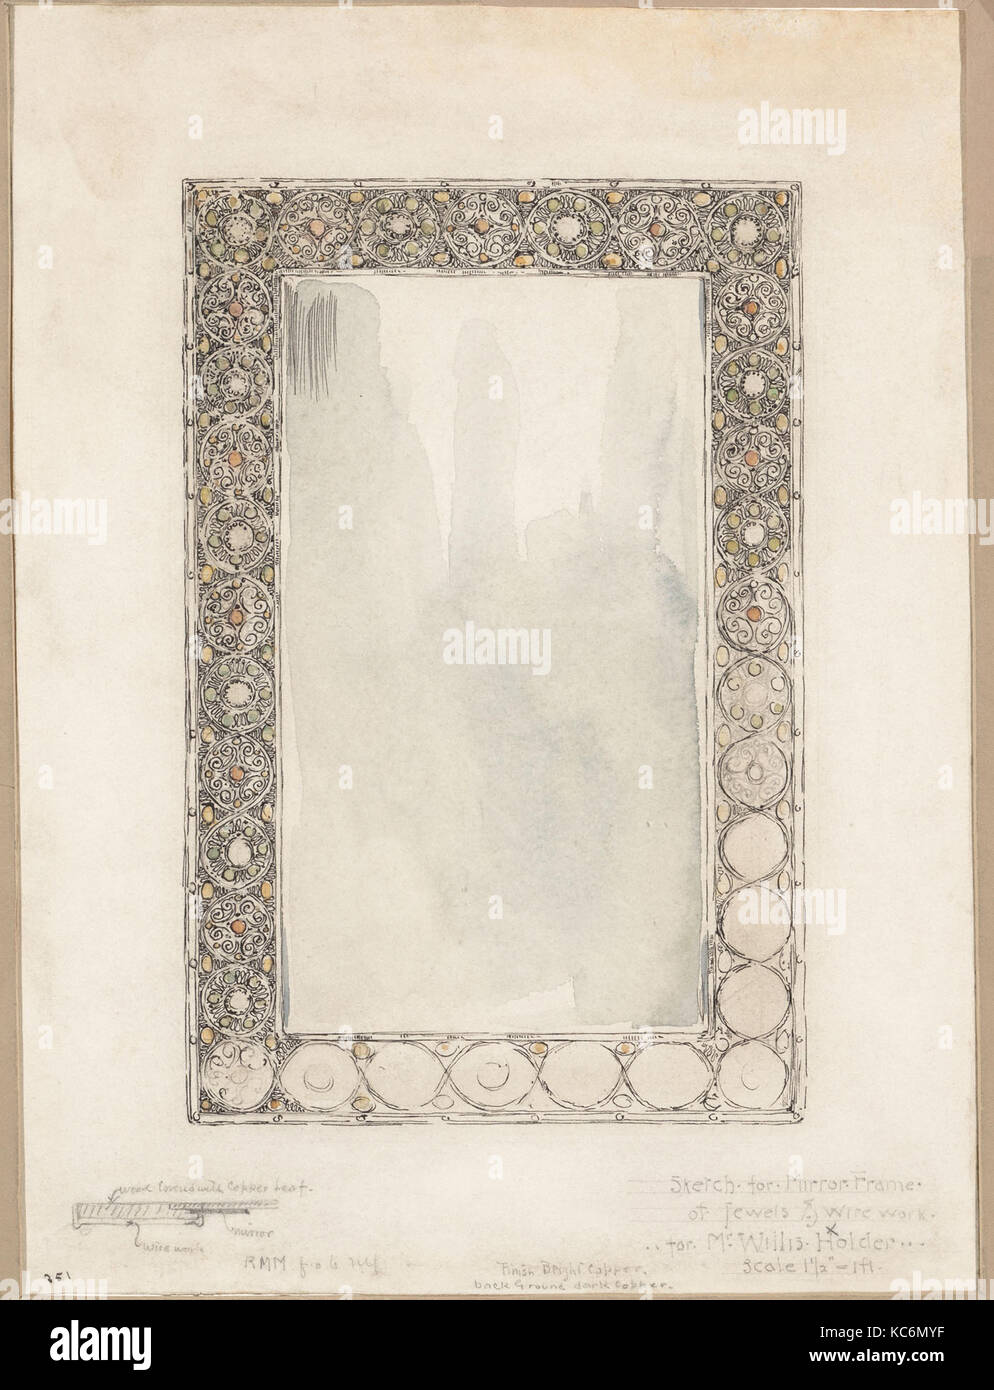 Sketch for Mirror Frame of Jewels & Wirework, Tiffany Glass and ...